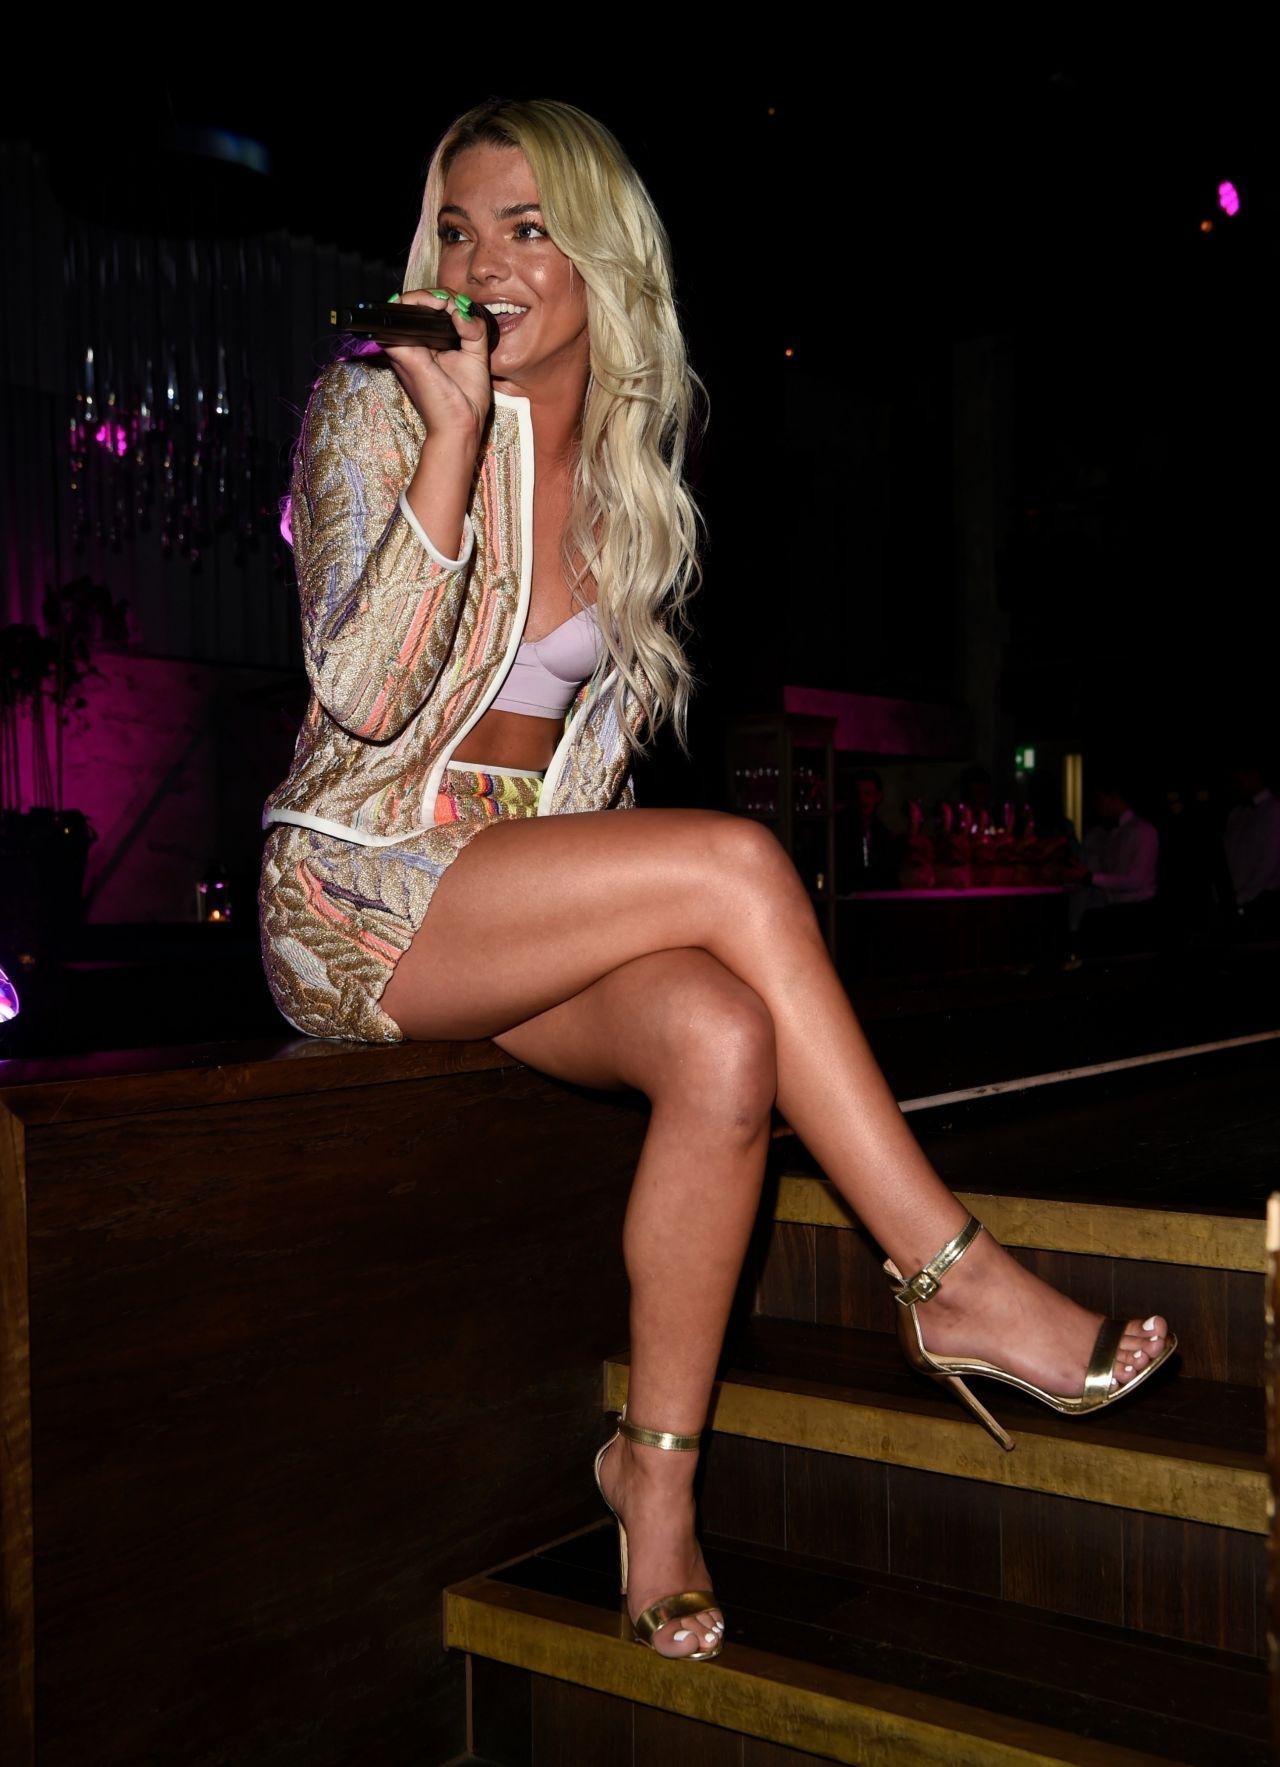 louisa-johnson-private-performance-in-manchester-05-16-2018-17.jpg